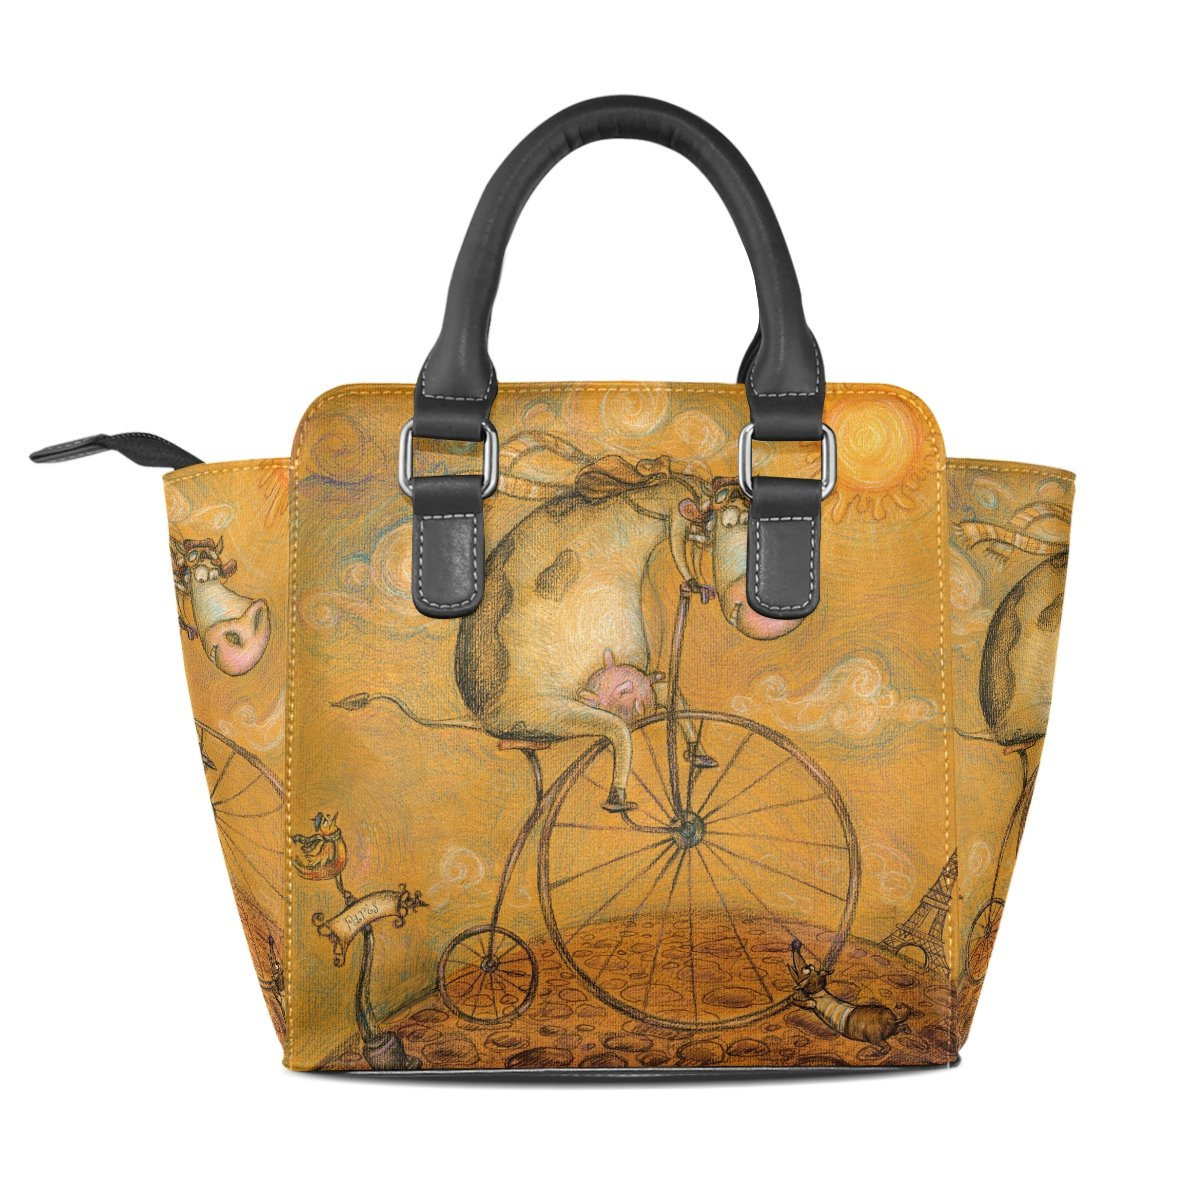 Sunlome Vintage Cute Cow on the Bicycle Womens Leather Tote Shoulder Bags Handbags